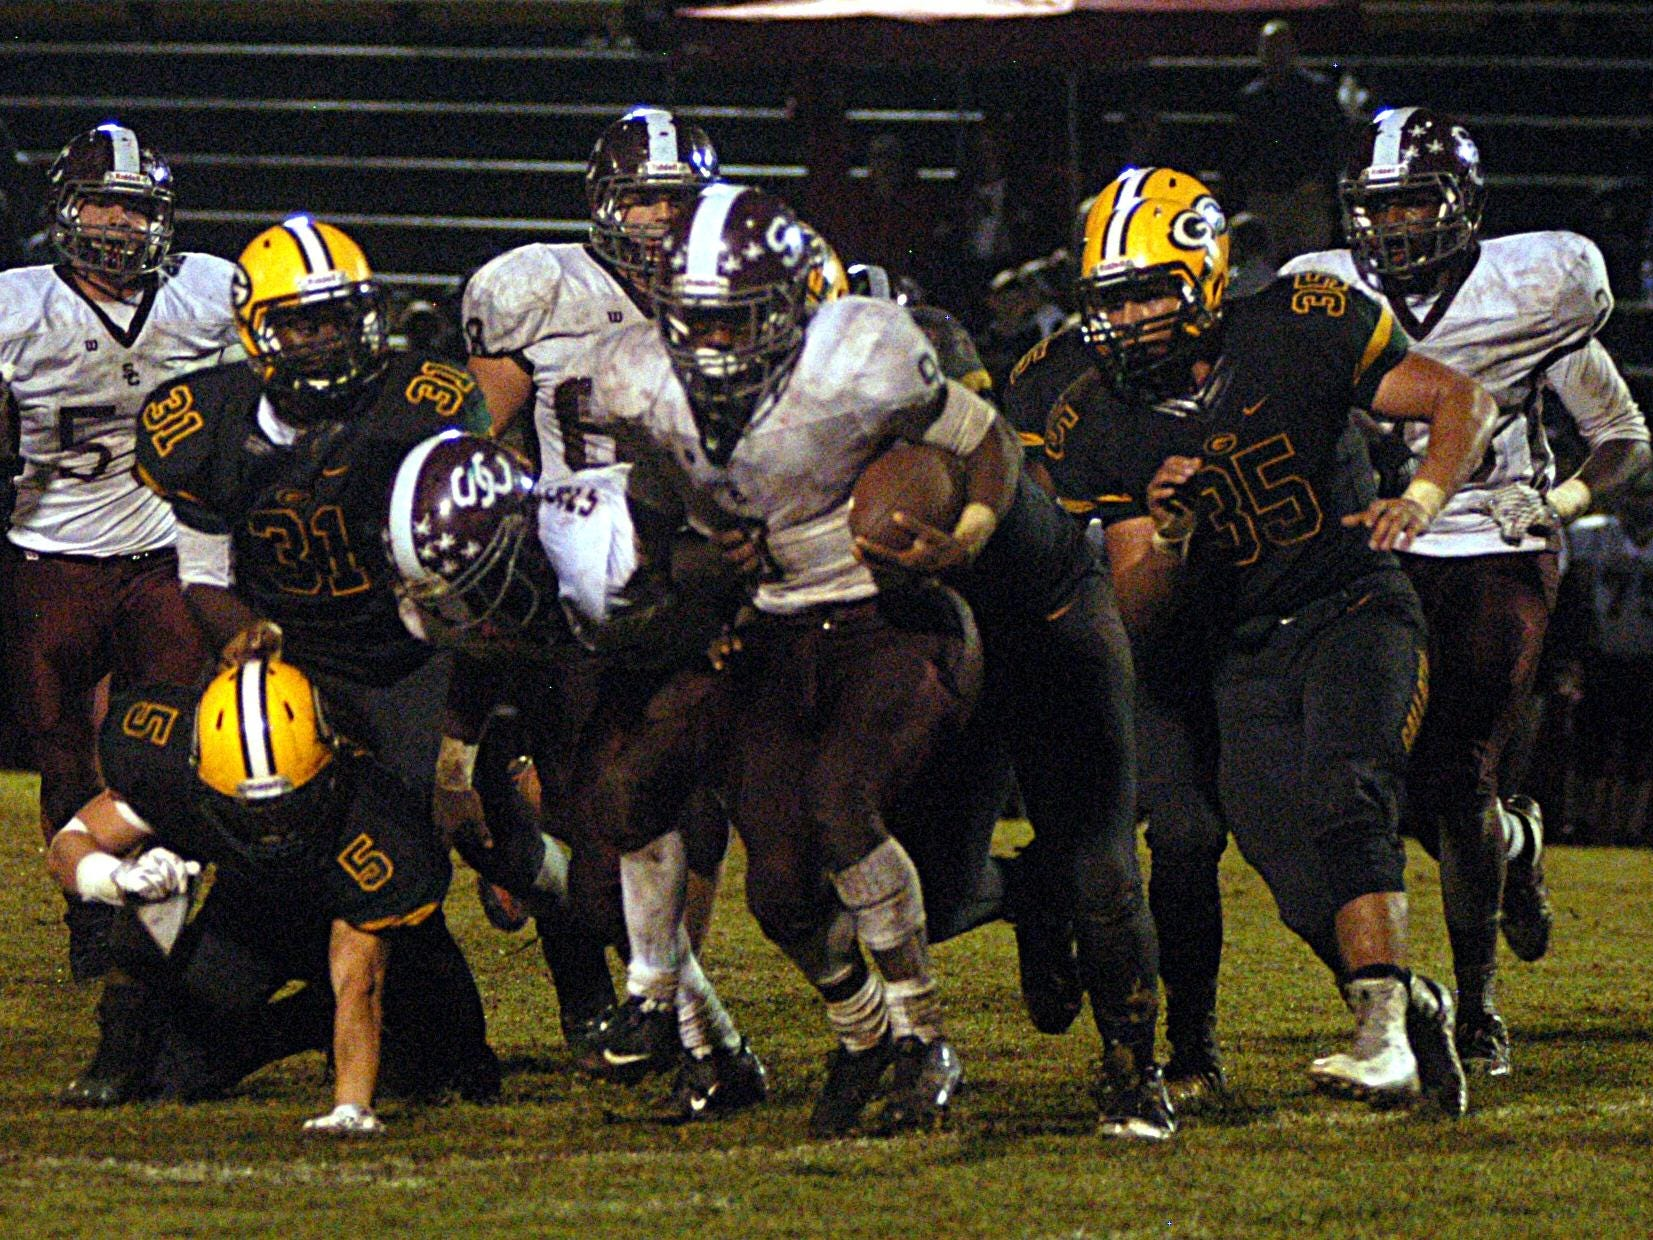 Station Camp sophomore tailback Sirtavious Perry fights for extra yardage during the third quarter of Friday's game at Gallatin. Perry scored two touchdowns in the Bison's 27-19 victory.